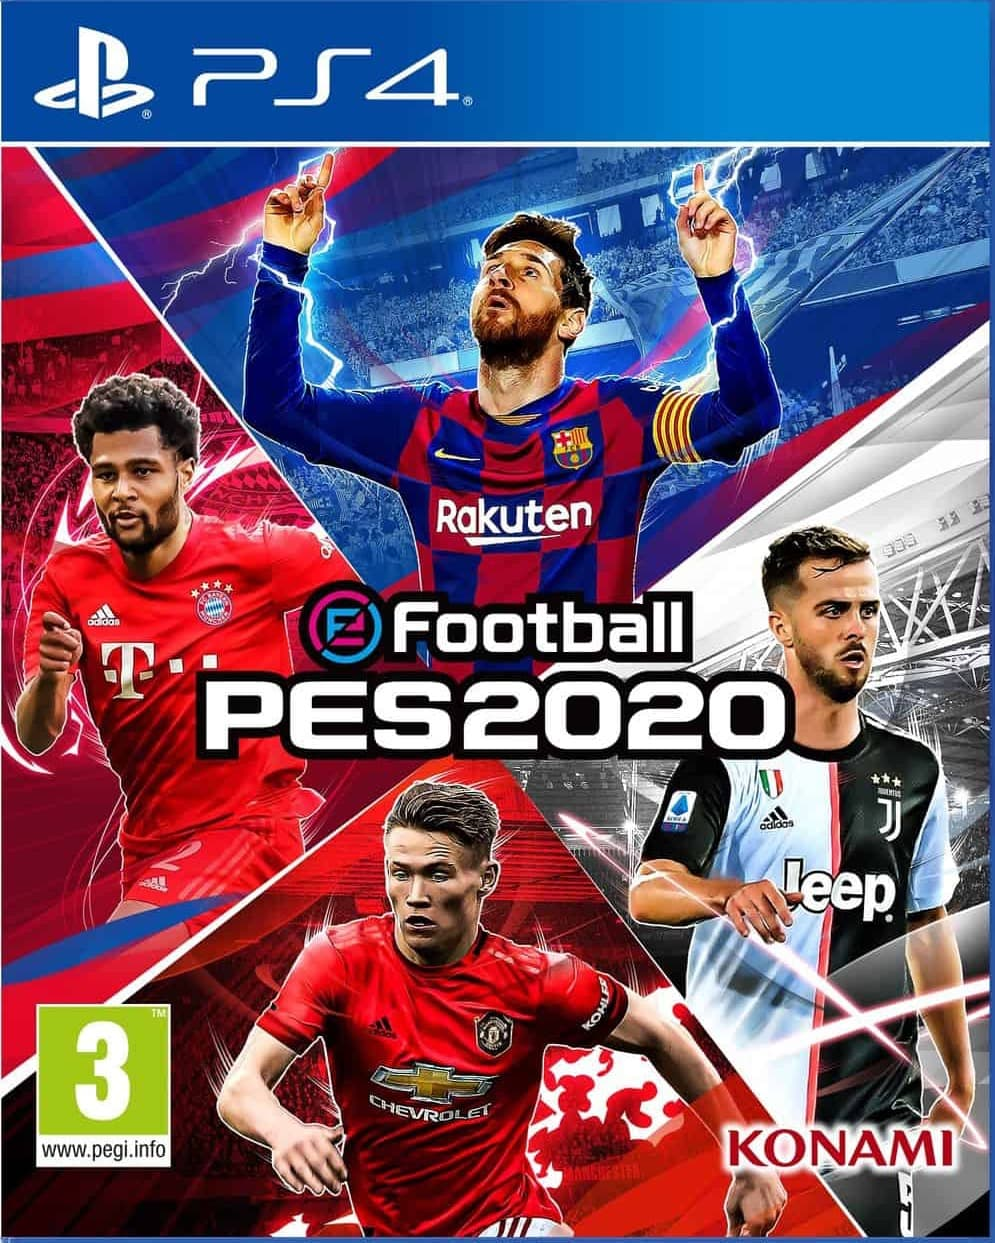 Pro Evolution Soccer 2020 (PES 20) (PS4, рус.титры) от  MegaStore.kg